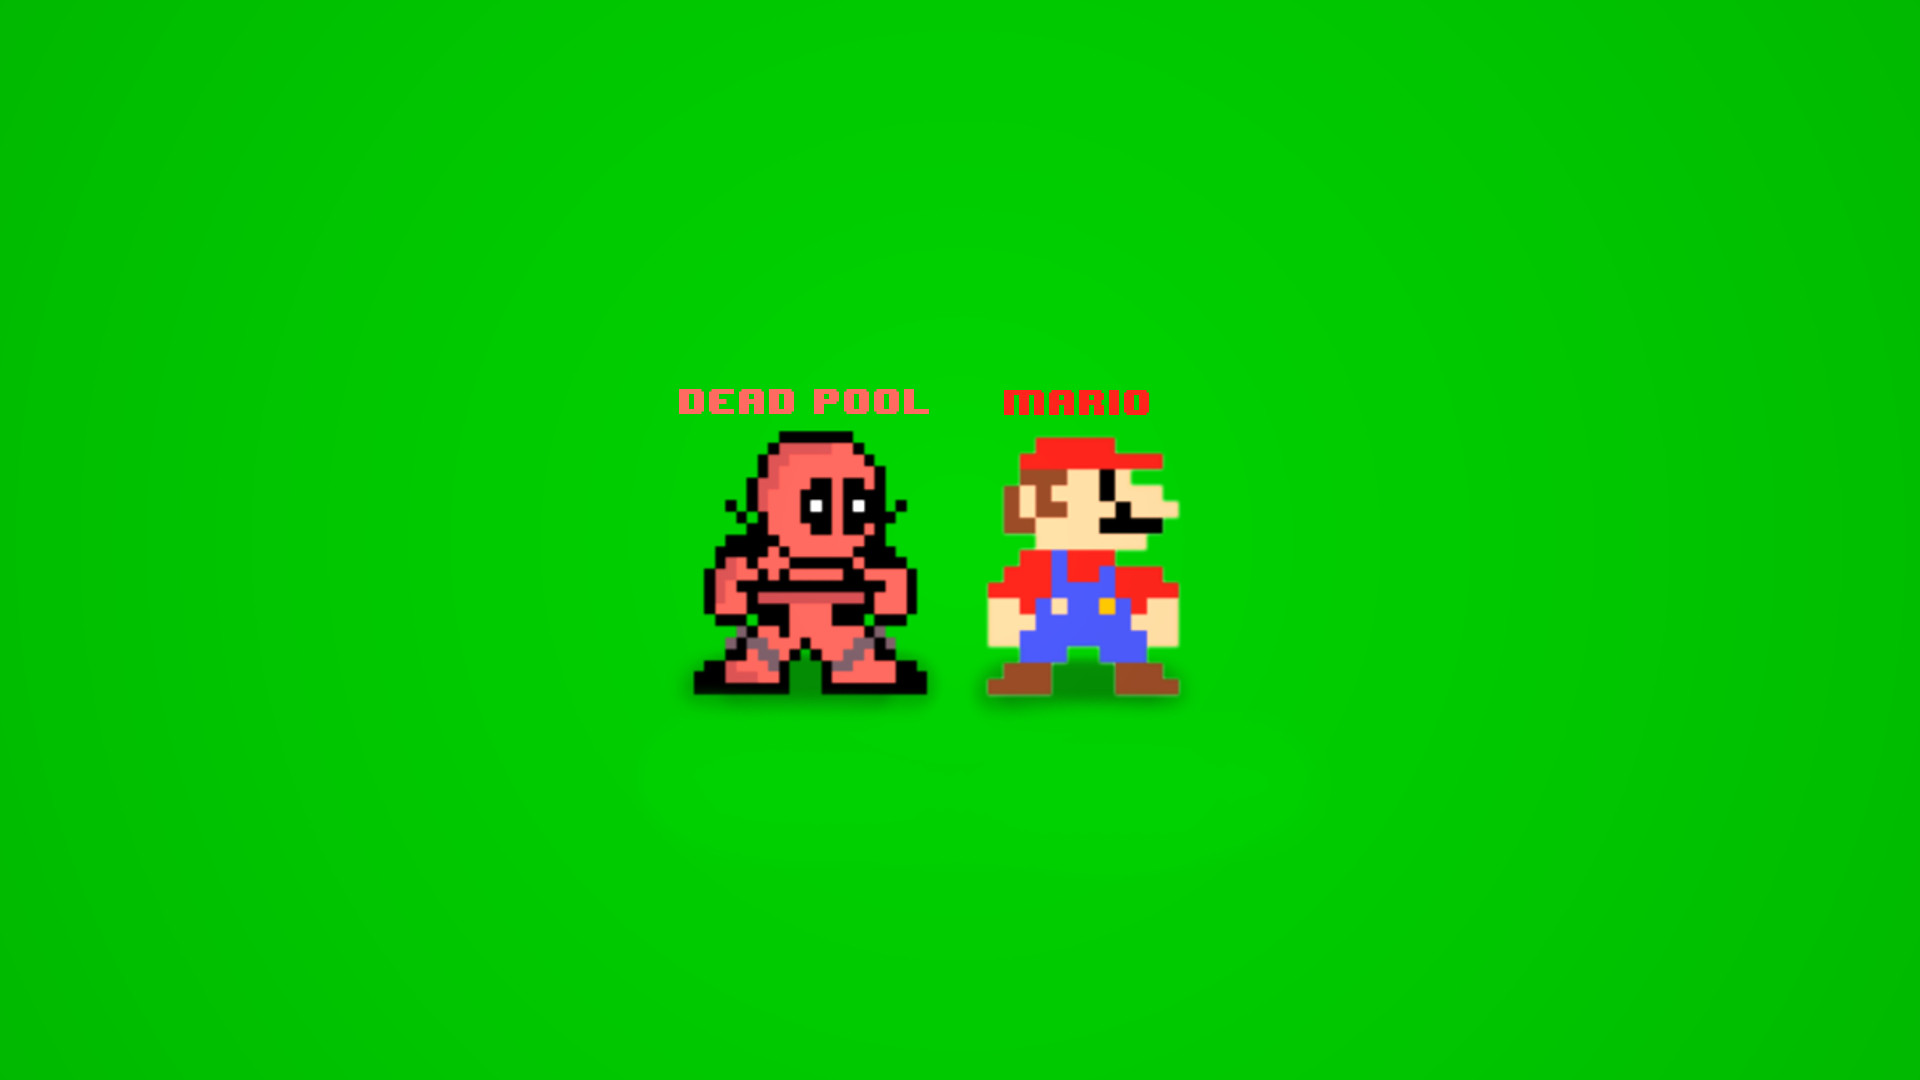 … Deadpool and Mario 8bit by Binary-Map